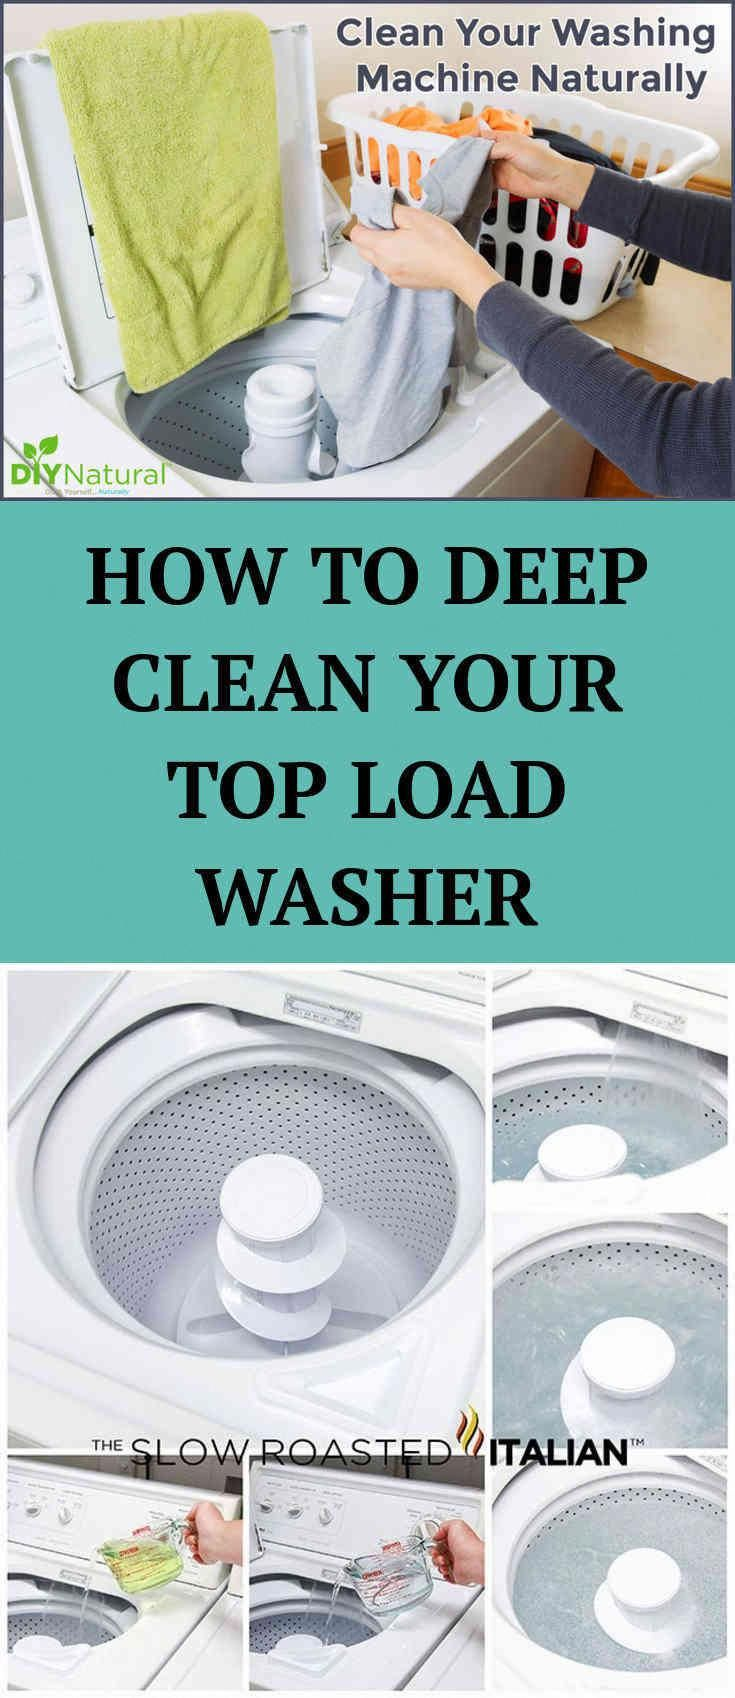 Boom Want To Know More About Clean Washing Machine Will Leave You